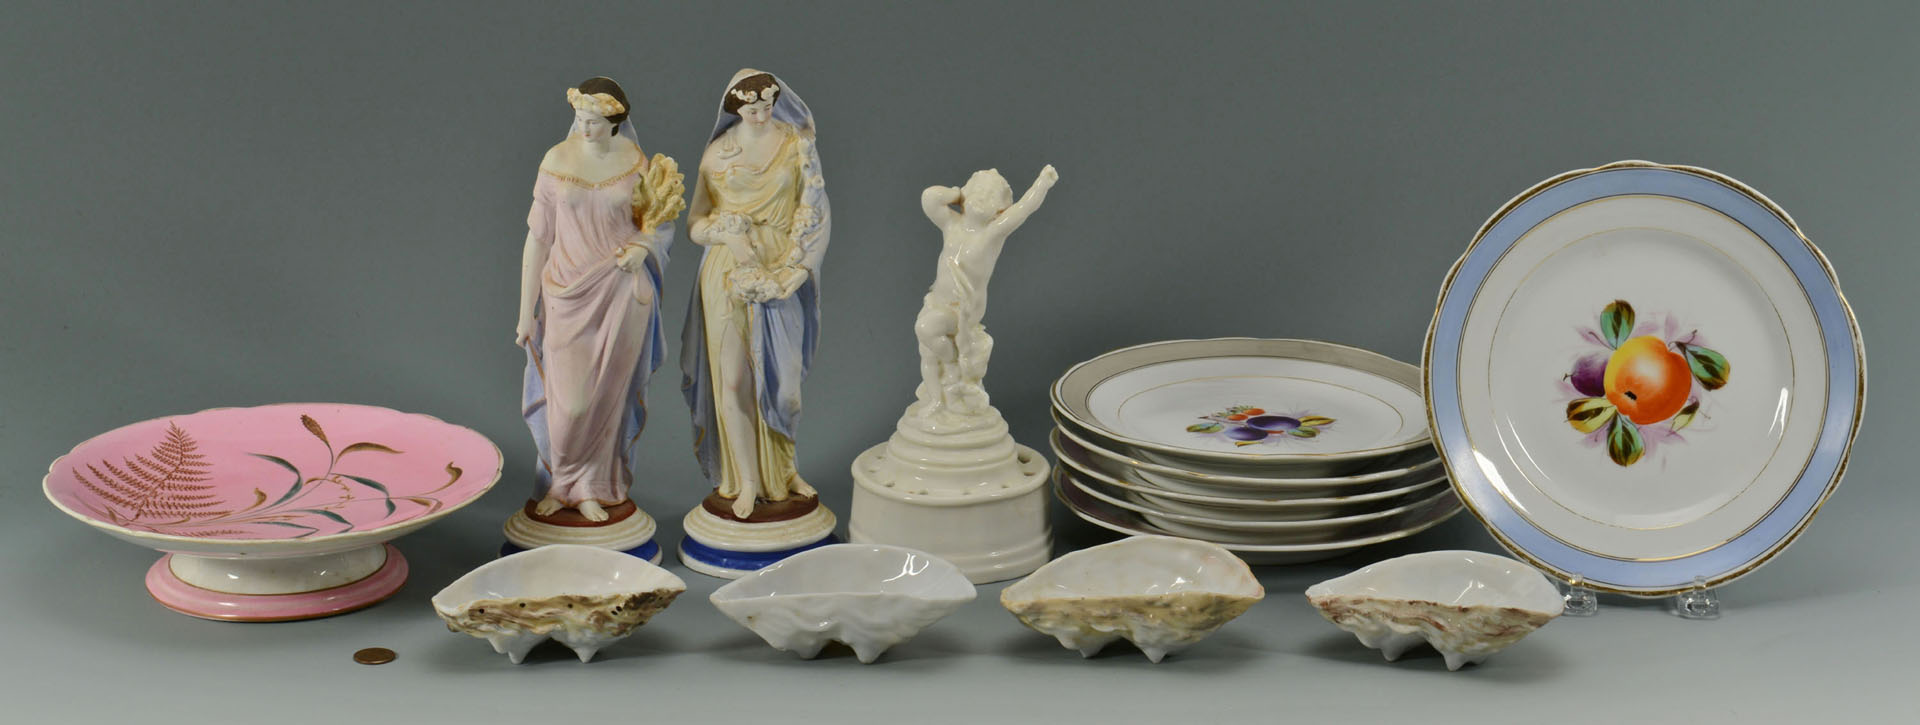 Lot 630: Grouping of KPM Plates, Oyster Cups, Figurals